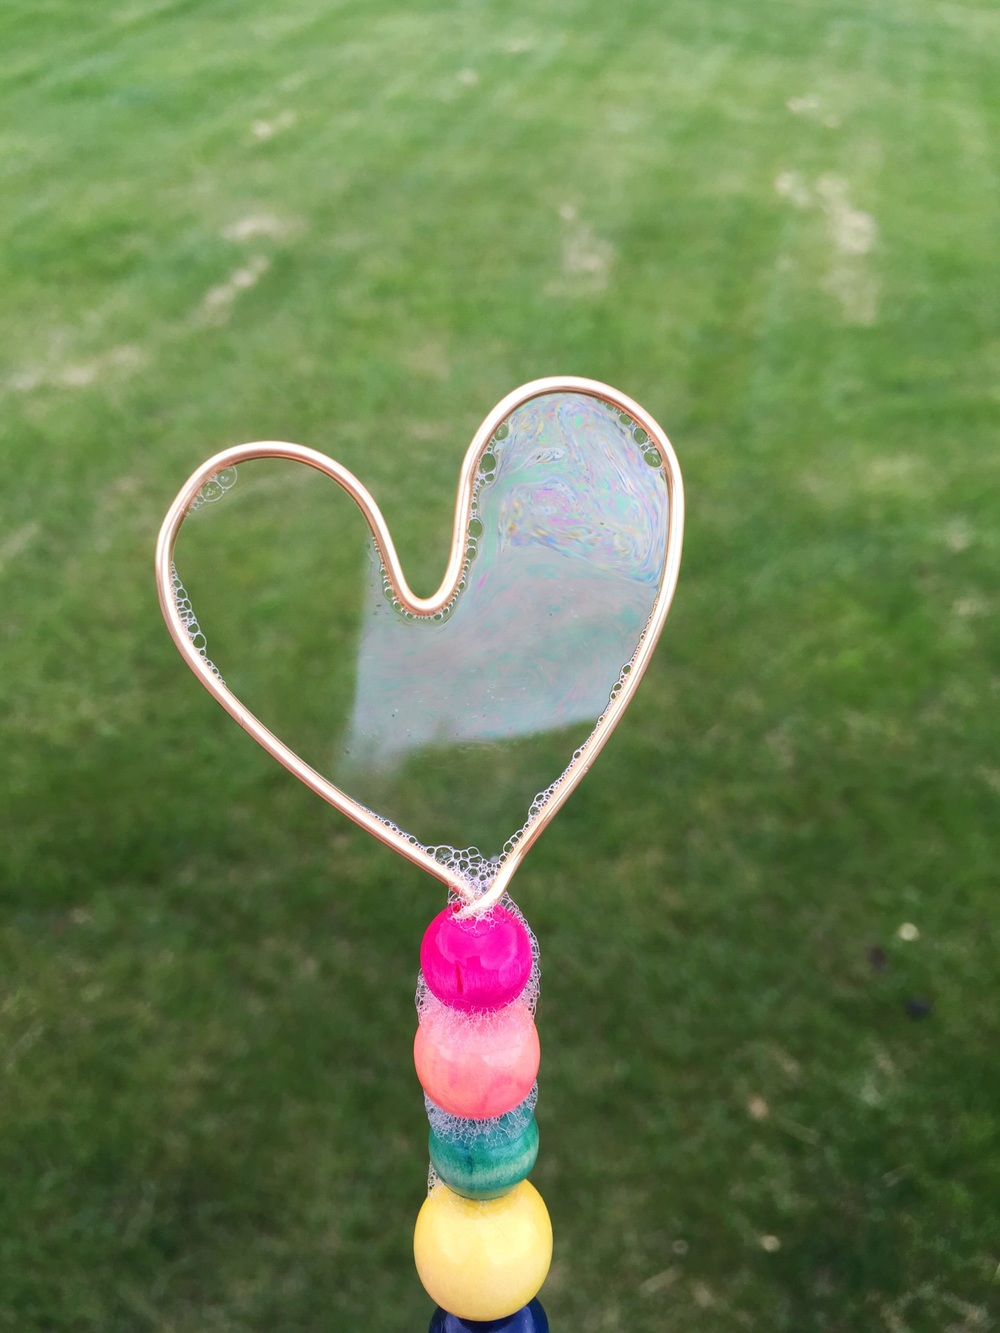 Make your own bubble wands. Click through for tutorial.